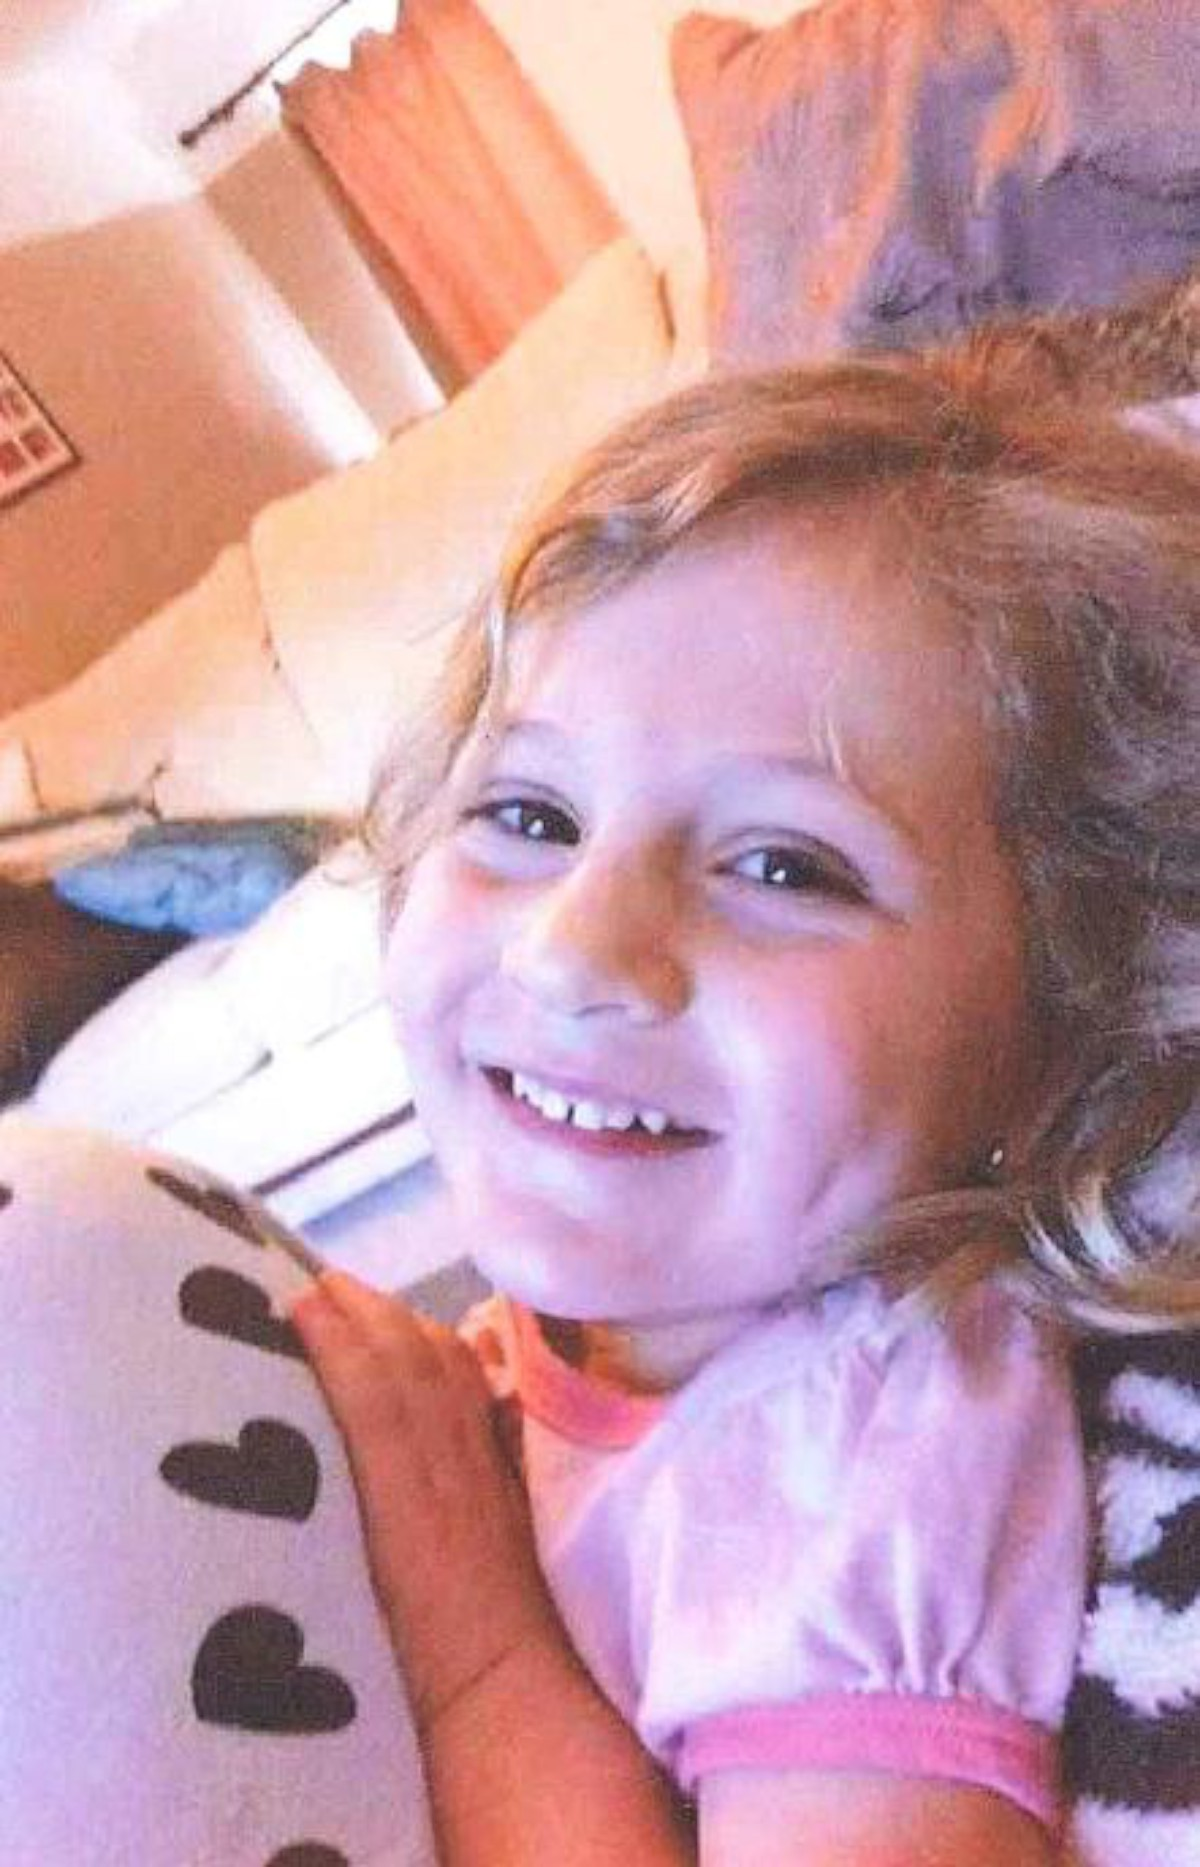 Freya's mum Carly described her as a happy, playful little girl